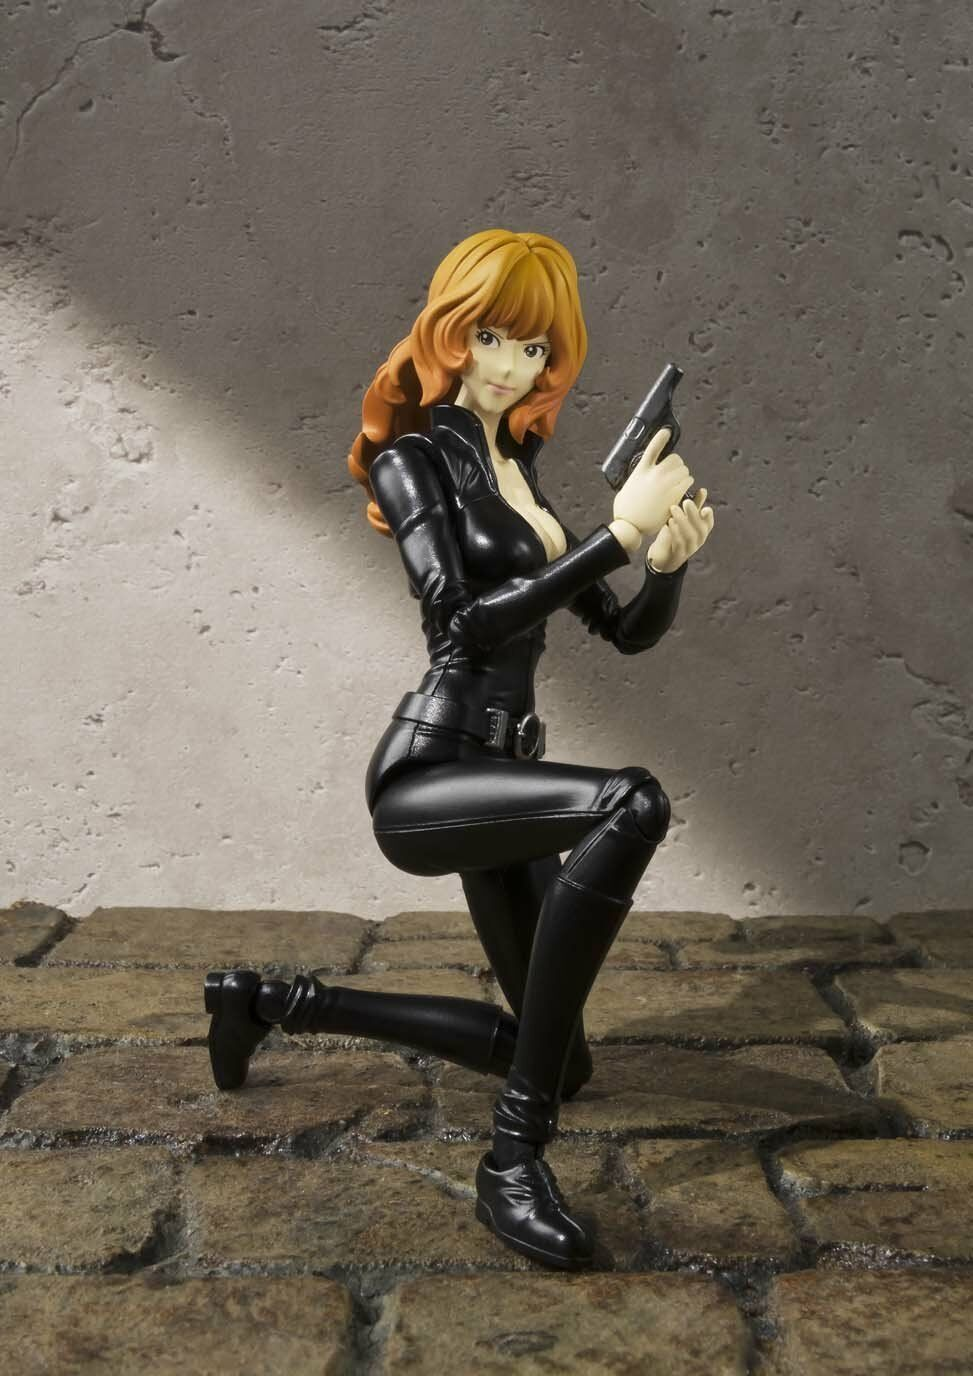 Bandai S.H.Figuarts Fujiko Mine Lupin the 3rd 3rd 3rd Action Figure third 24dcac